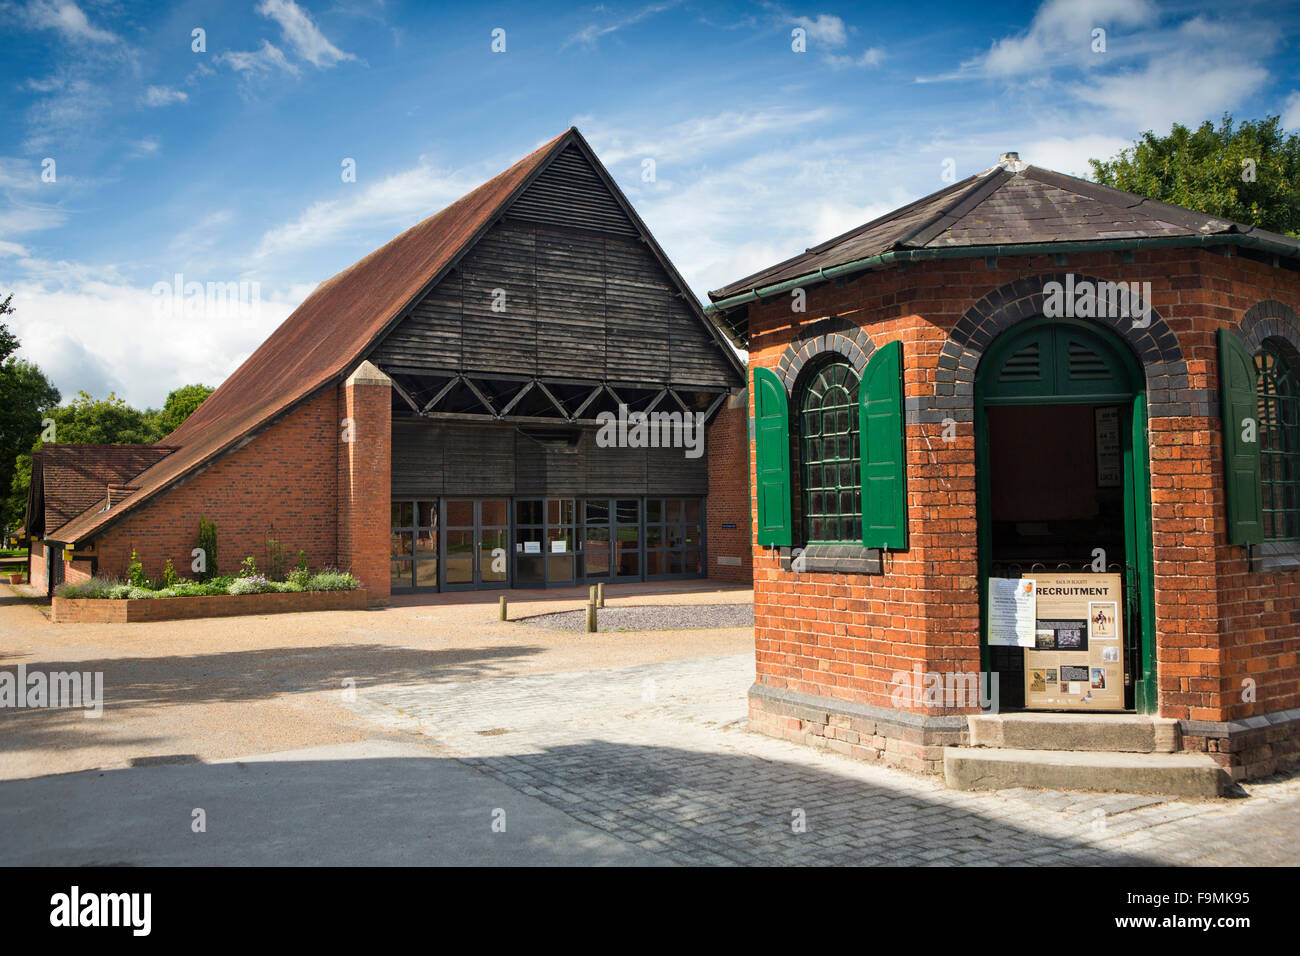 UK, England, Worcestershire, Bromsgrove, Avoncroft Museum of Historic Buildings, New Guesten Hall and Counting House - Stock Image